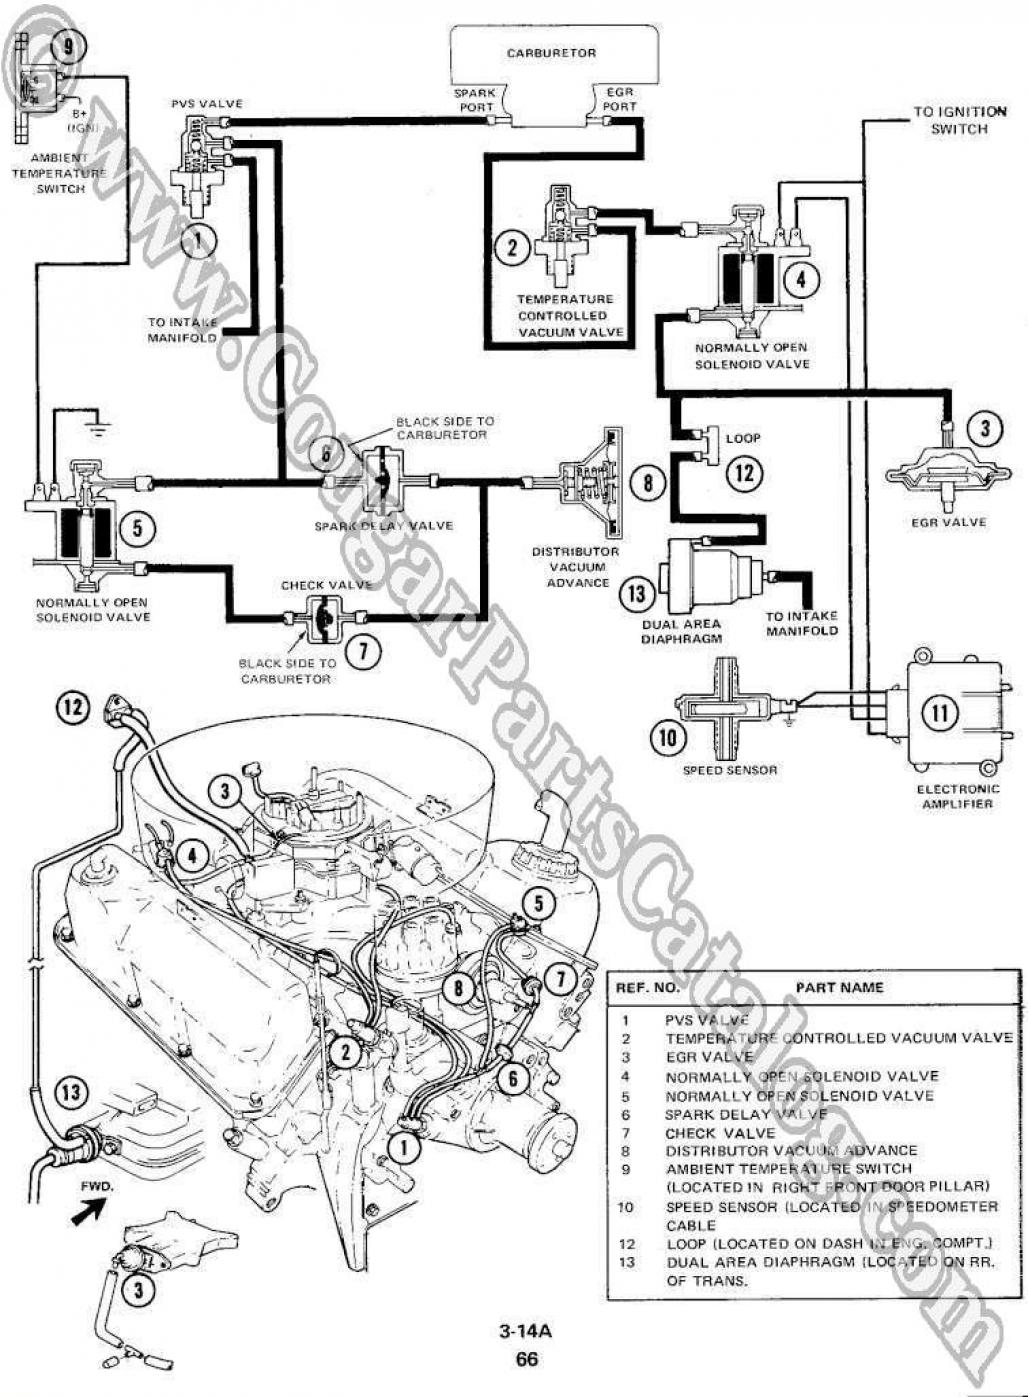 1973 Ford Coil Wiring Diagram Library 99 Mercury Cougar Fuse 73 Complete Diagrams U2022 Rh Sammich Co 1999 Sportster